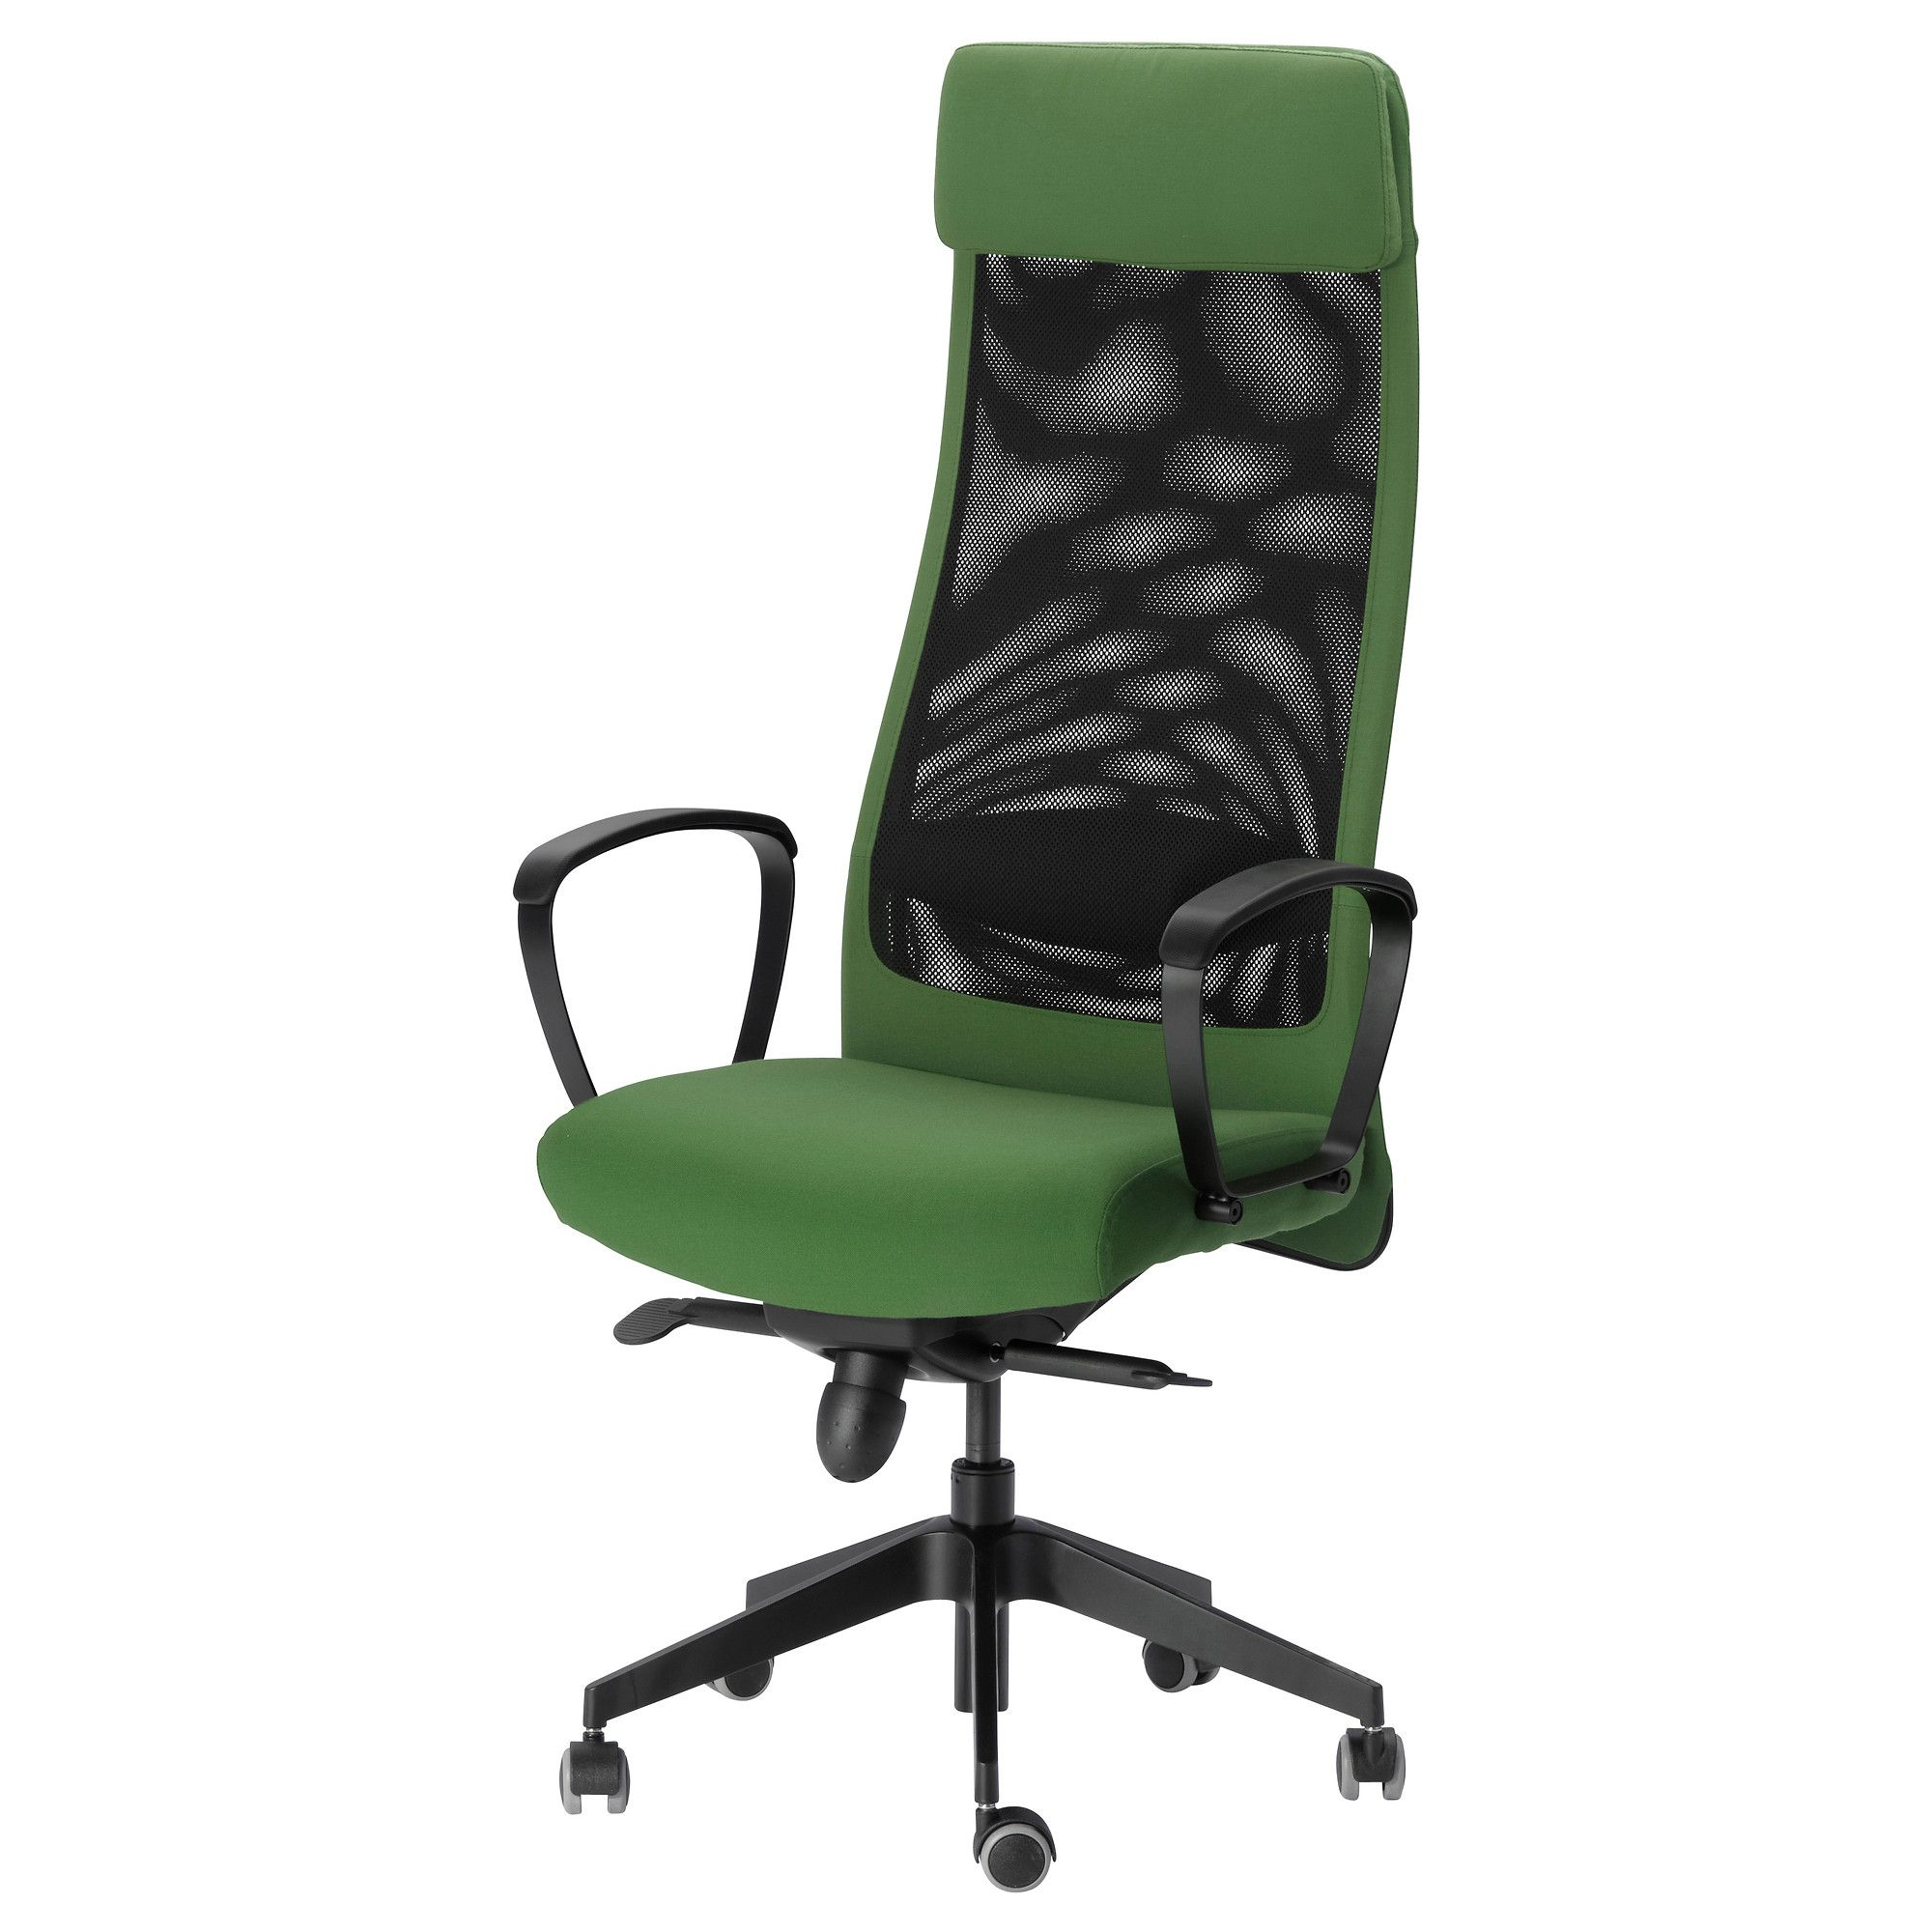 ikea chairs office. Ikea Green Markus Office Chair - I Wish They Had Other Color Options. This Is Probably The Closest. By Far Most Comfortable For My Body. Chairs